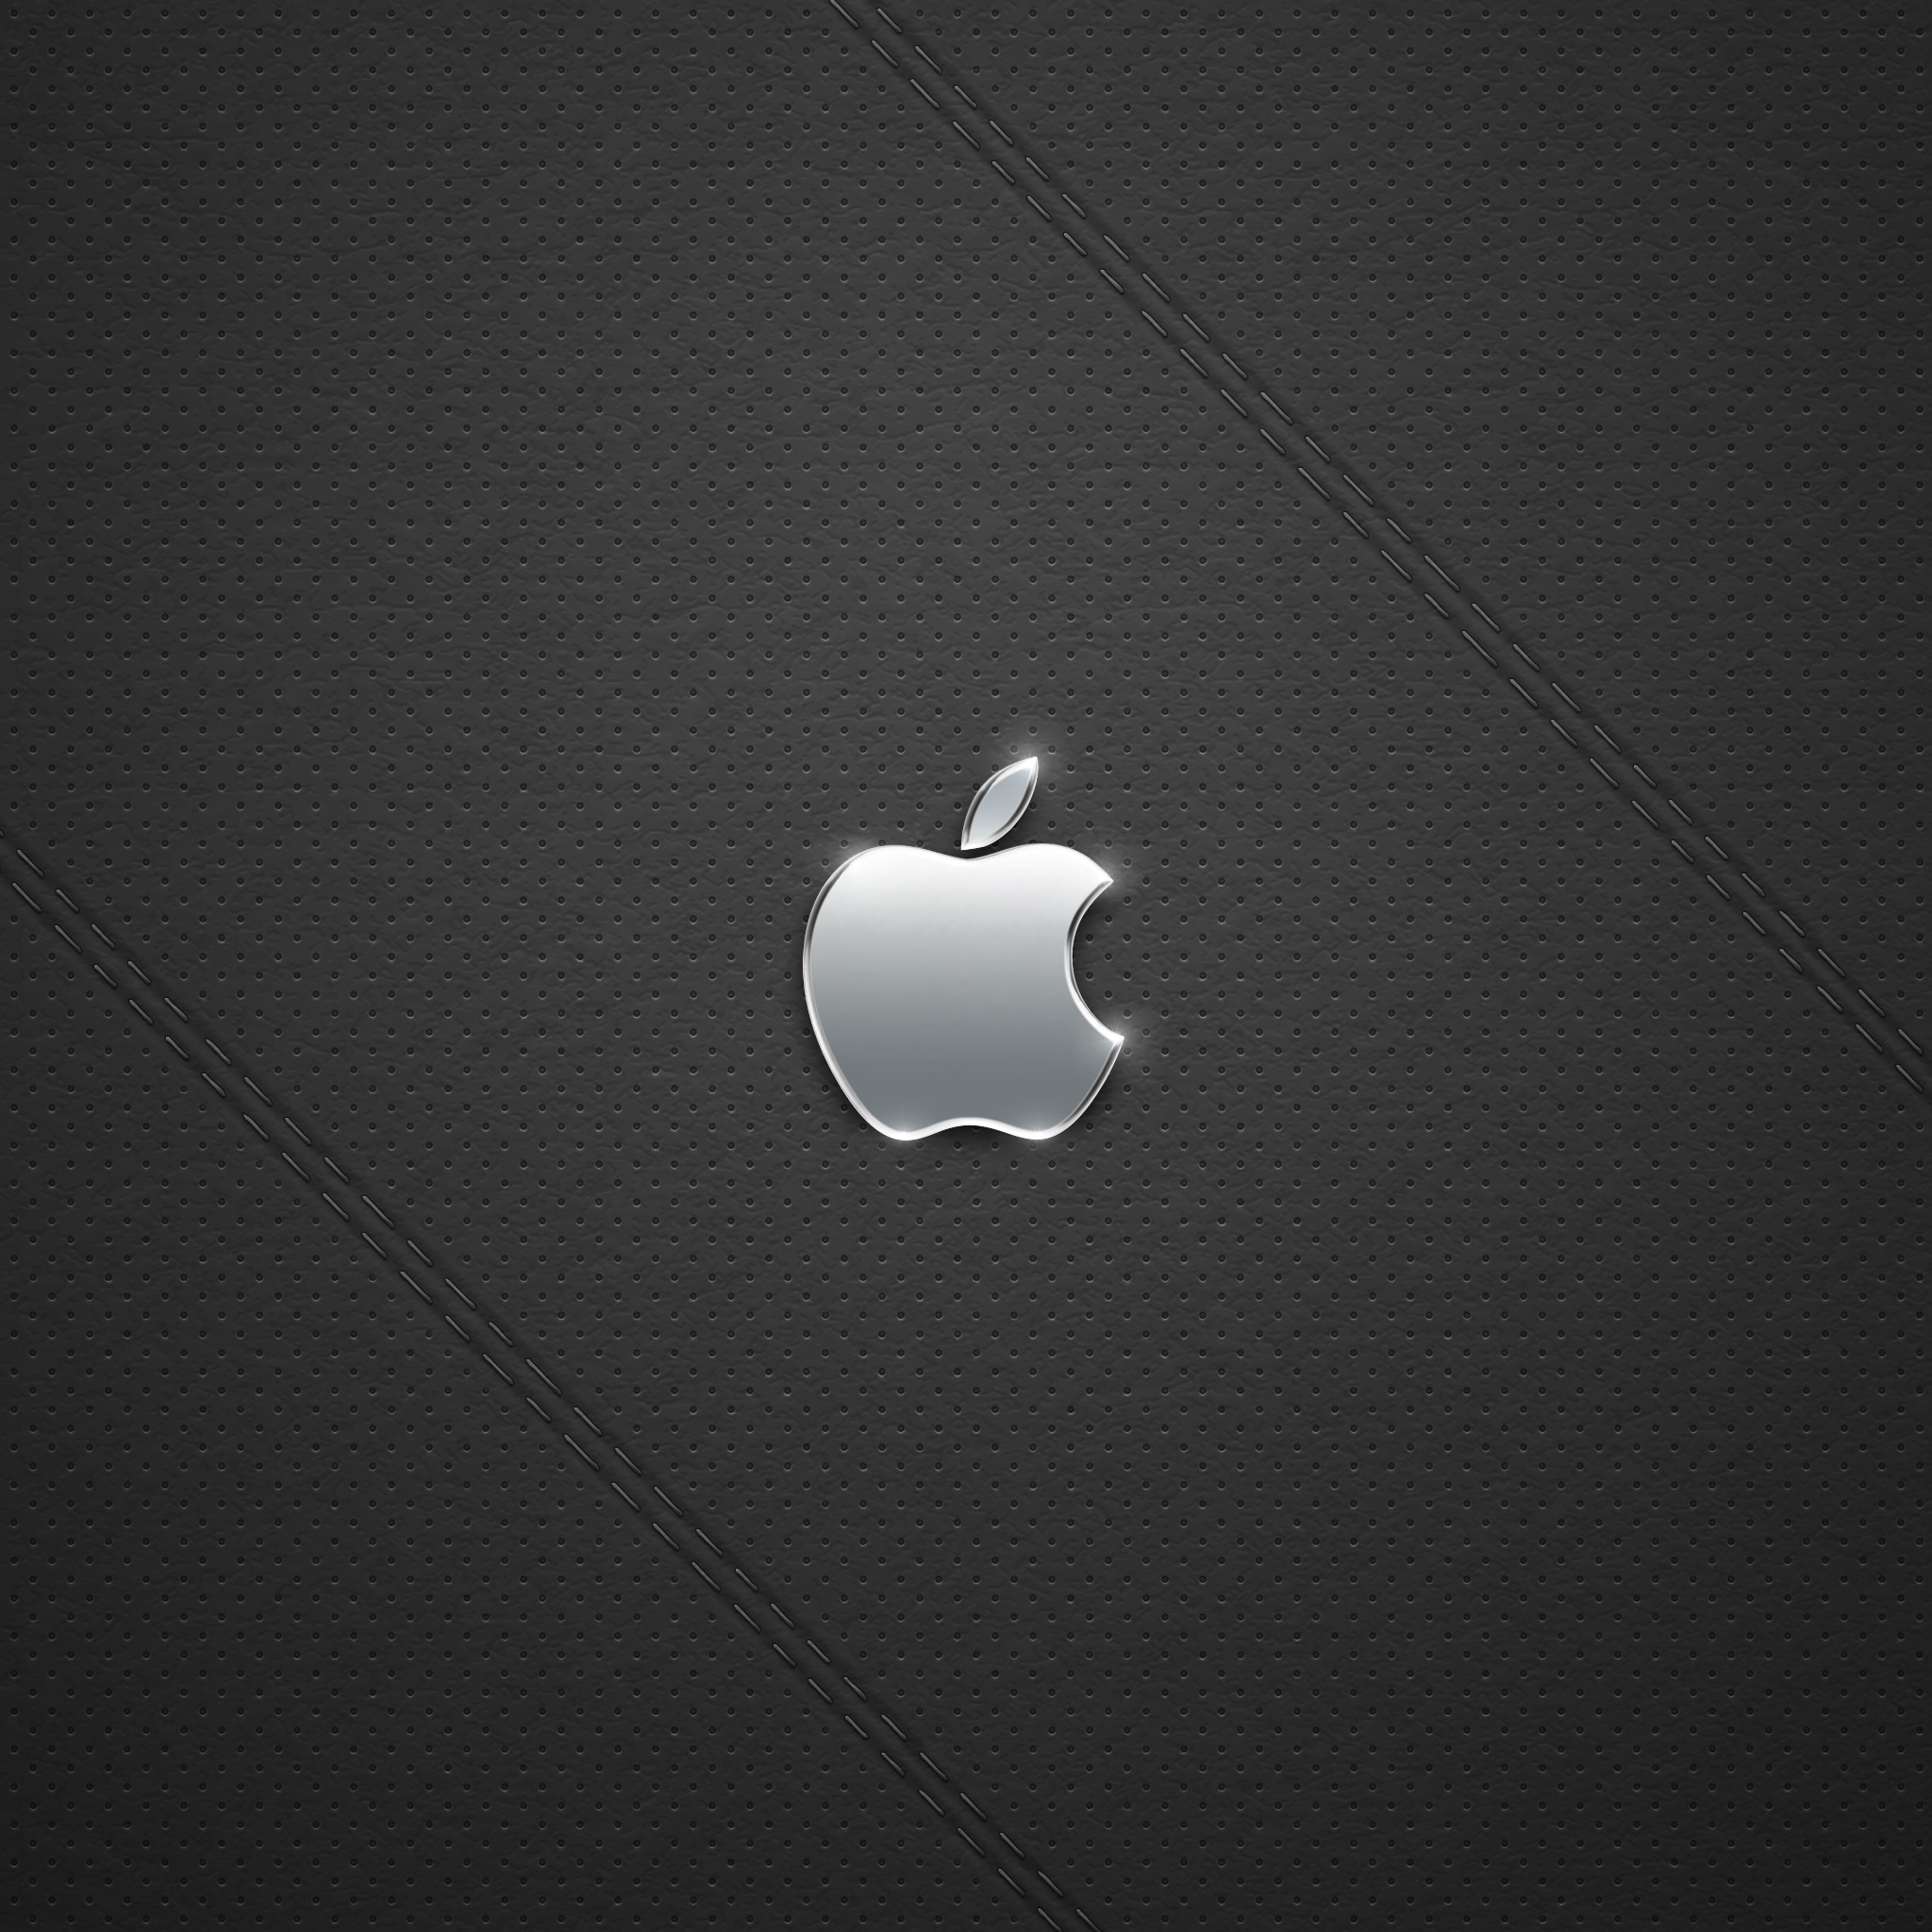 Download Wallpaper Ipad